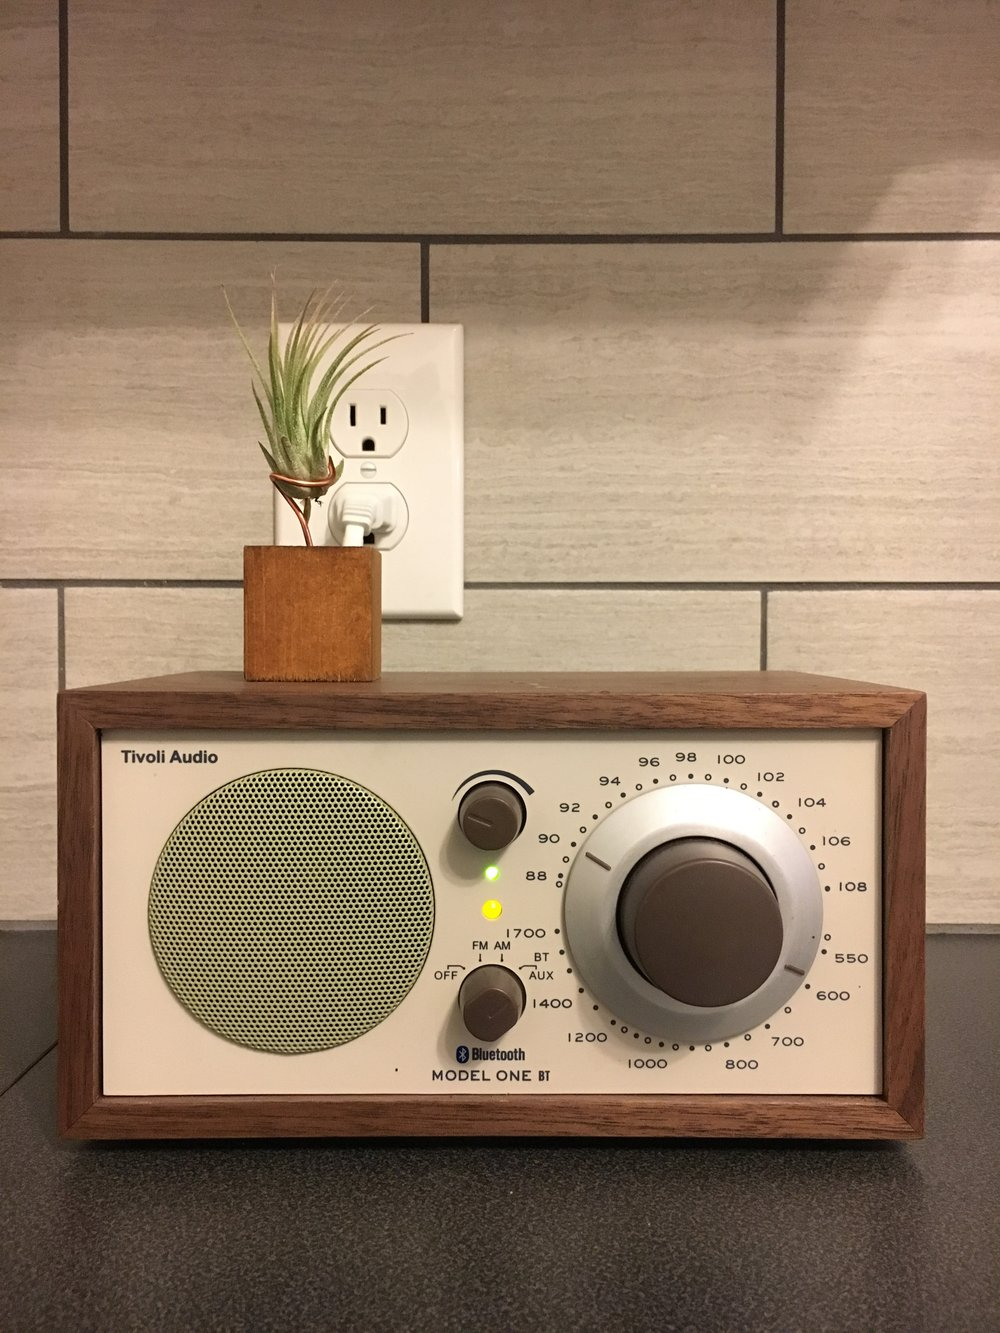 KMHD & Tiny Plants - Not a project, just an obsession. I listen early in the morning and late at night & water this tiny plant from time to time, too. Also, I'm a sustaining member at Portland's jazz radio station, Oregon Public Broadcasting, Color of Change, Southern Poverty Law Center, and Bitch Media. Keep scrolling.